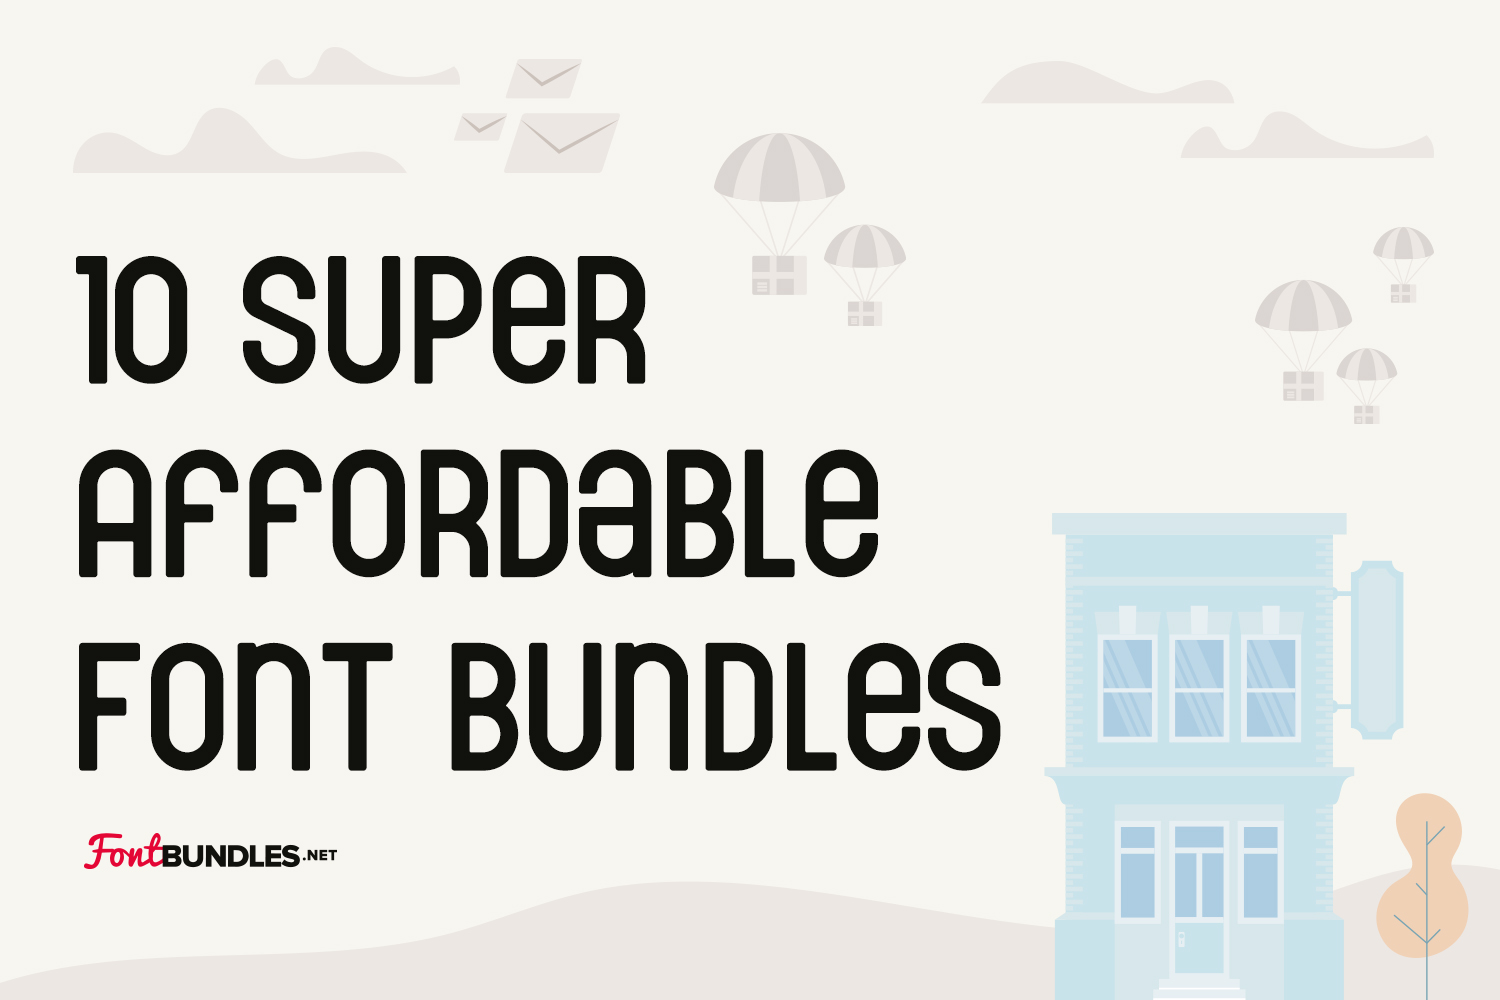 10 Super Affordable Font Bundles